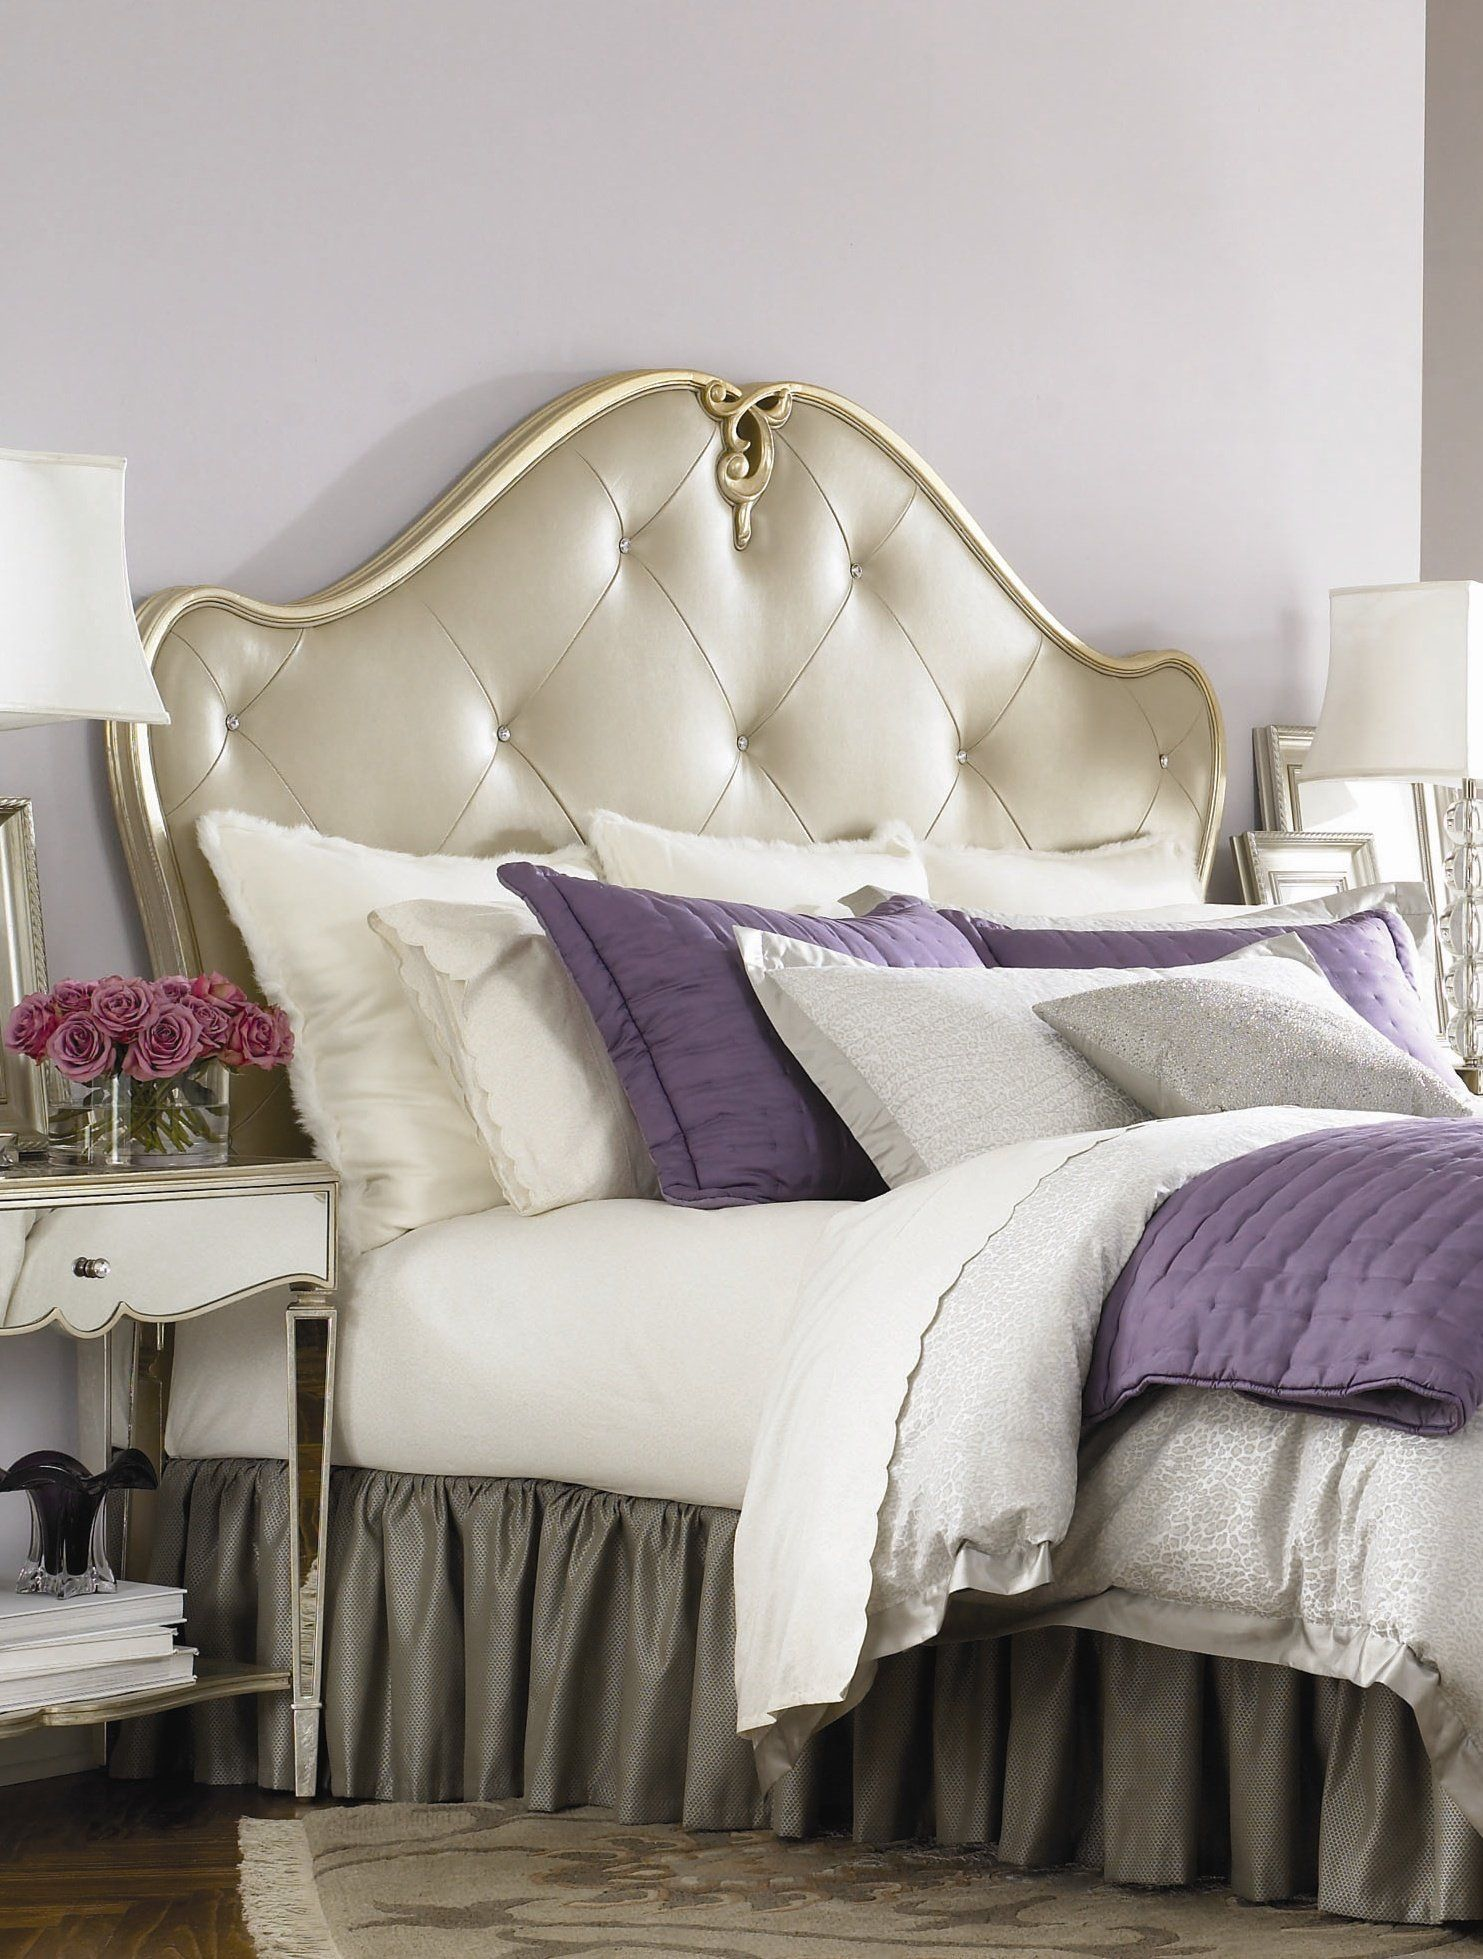 Bedroom, Contemporary Decorating Ideas For Bedrooms Design Of Tufted Headboard